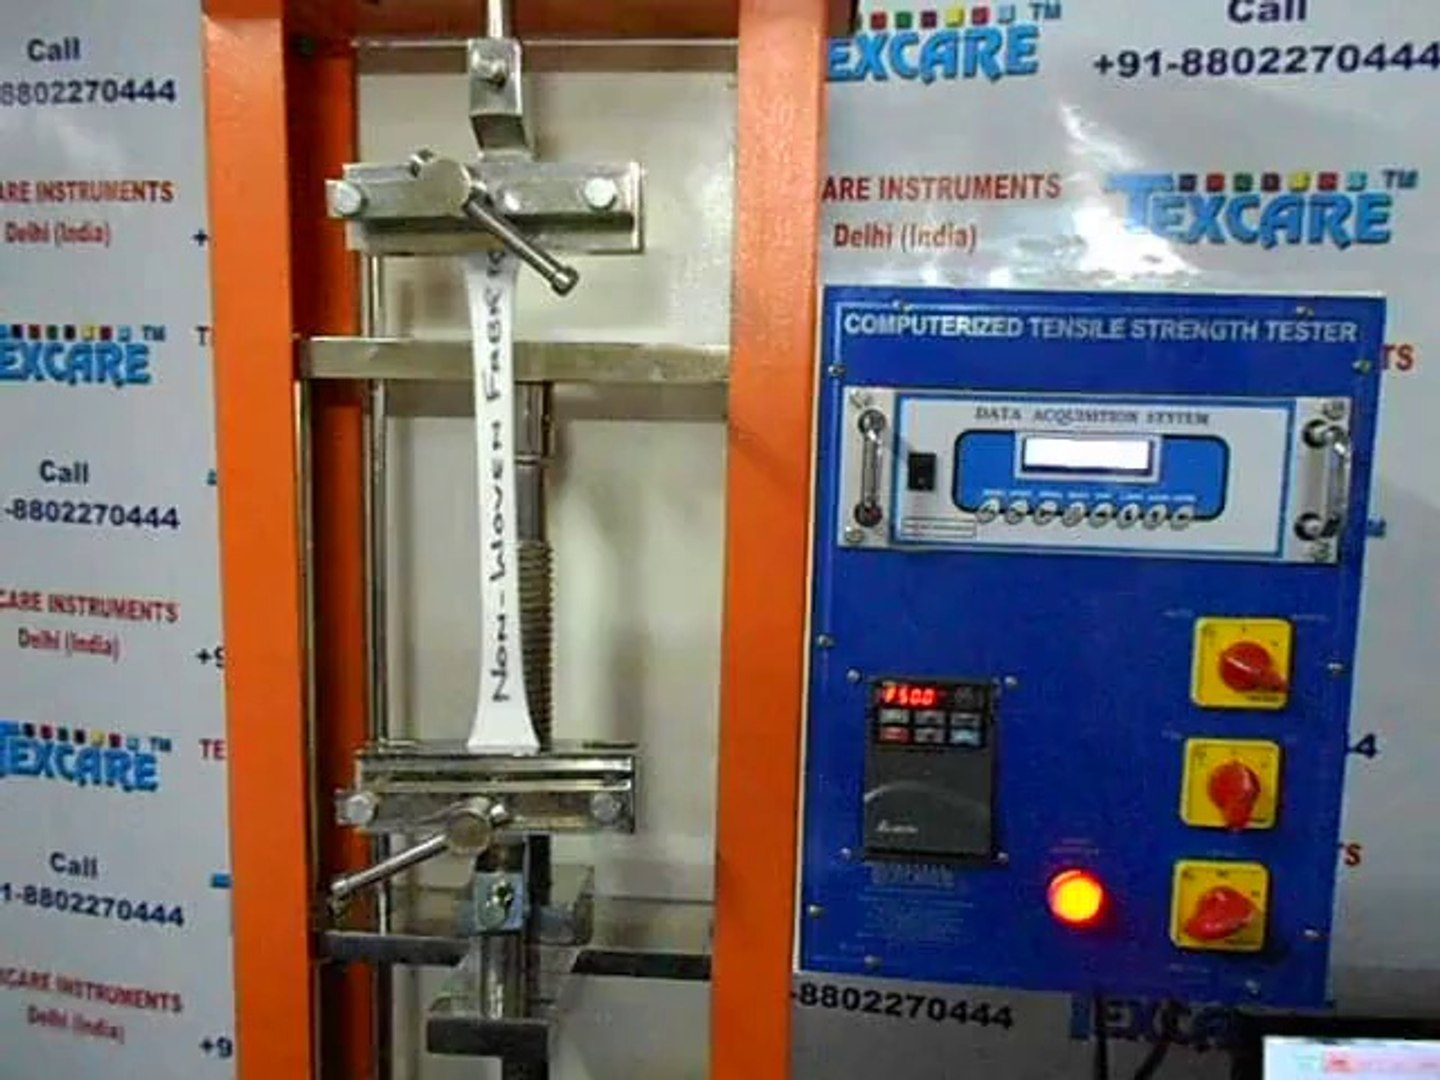 China Fabric Suppliers In Delhi Non Woven Fabric Tensile Strength Tester Manufacturers